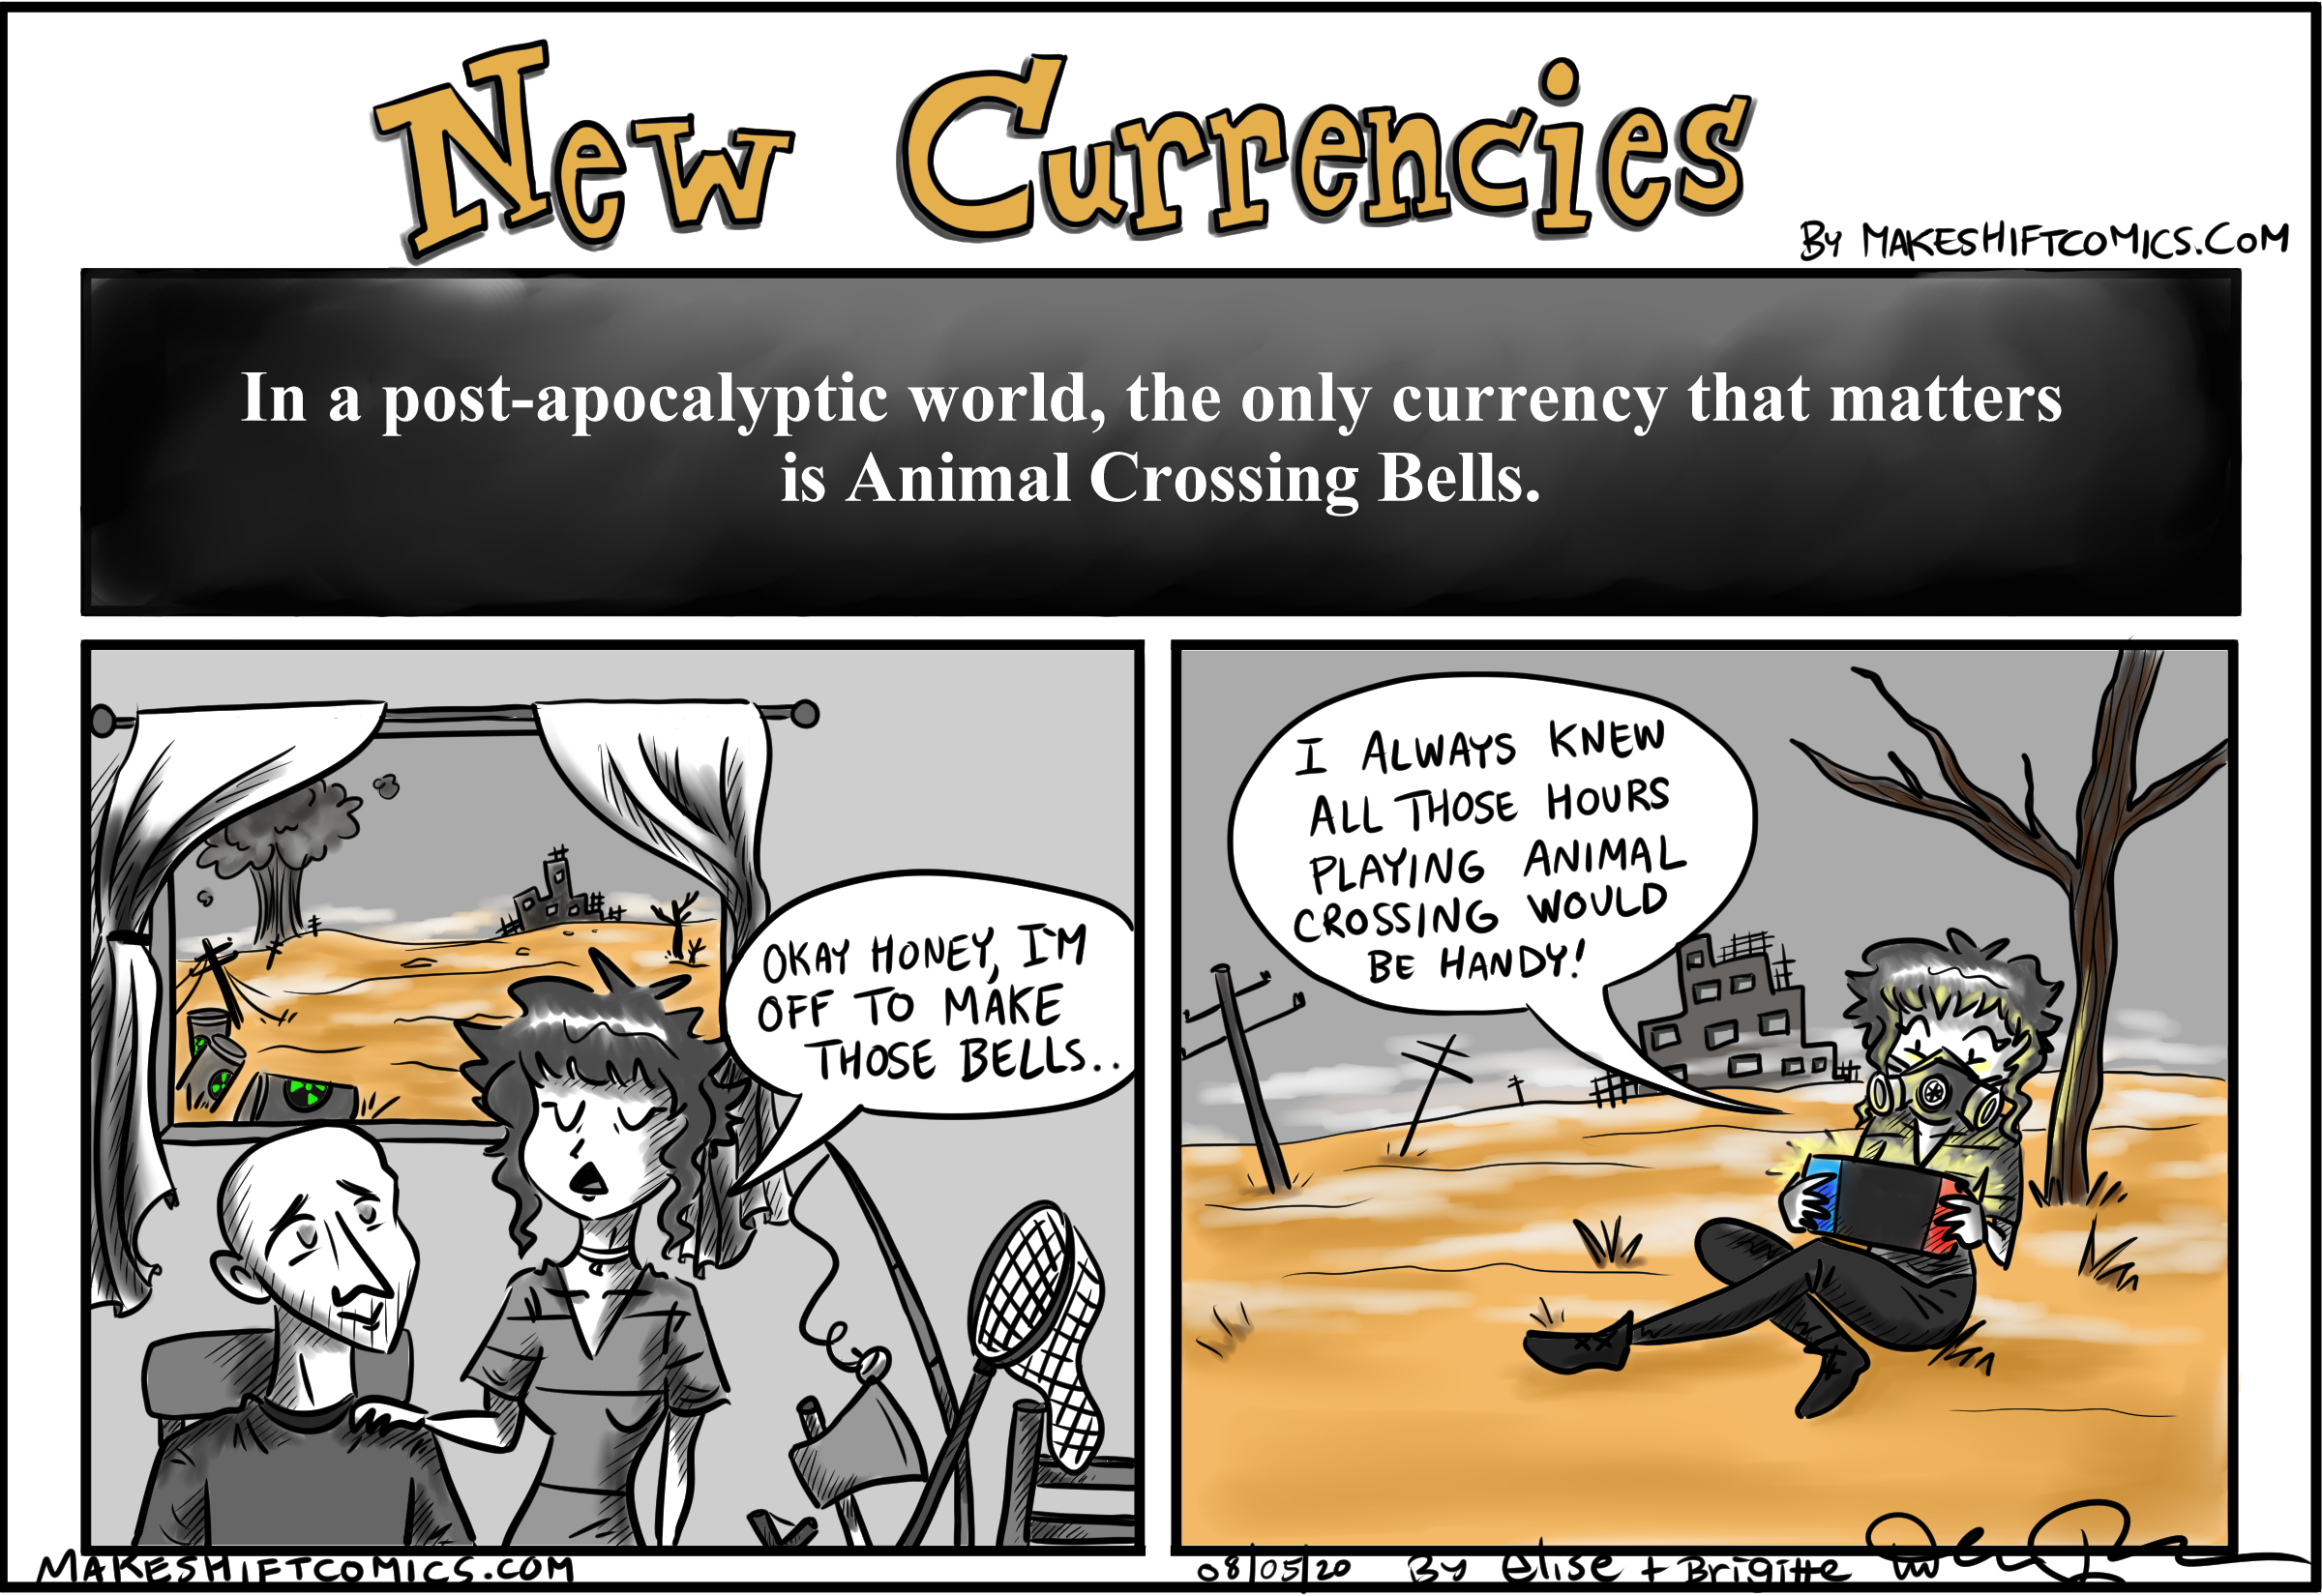 New Currencies